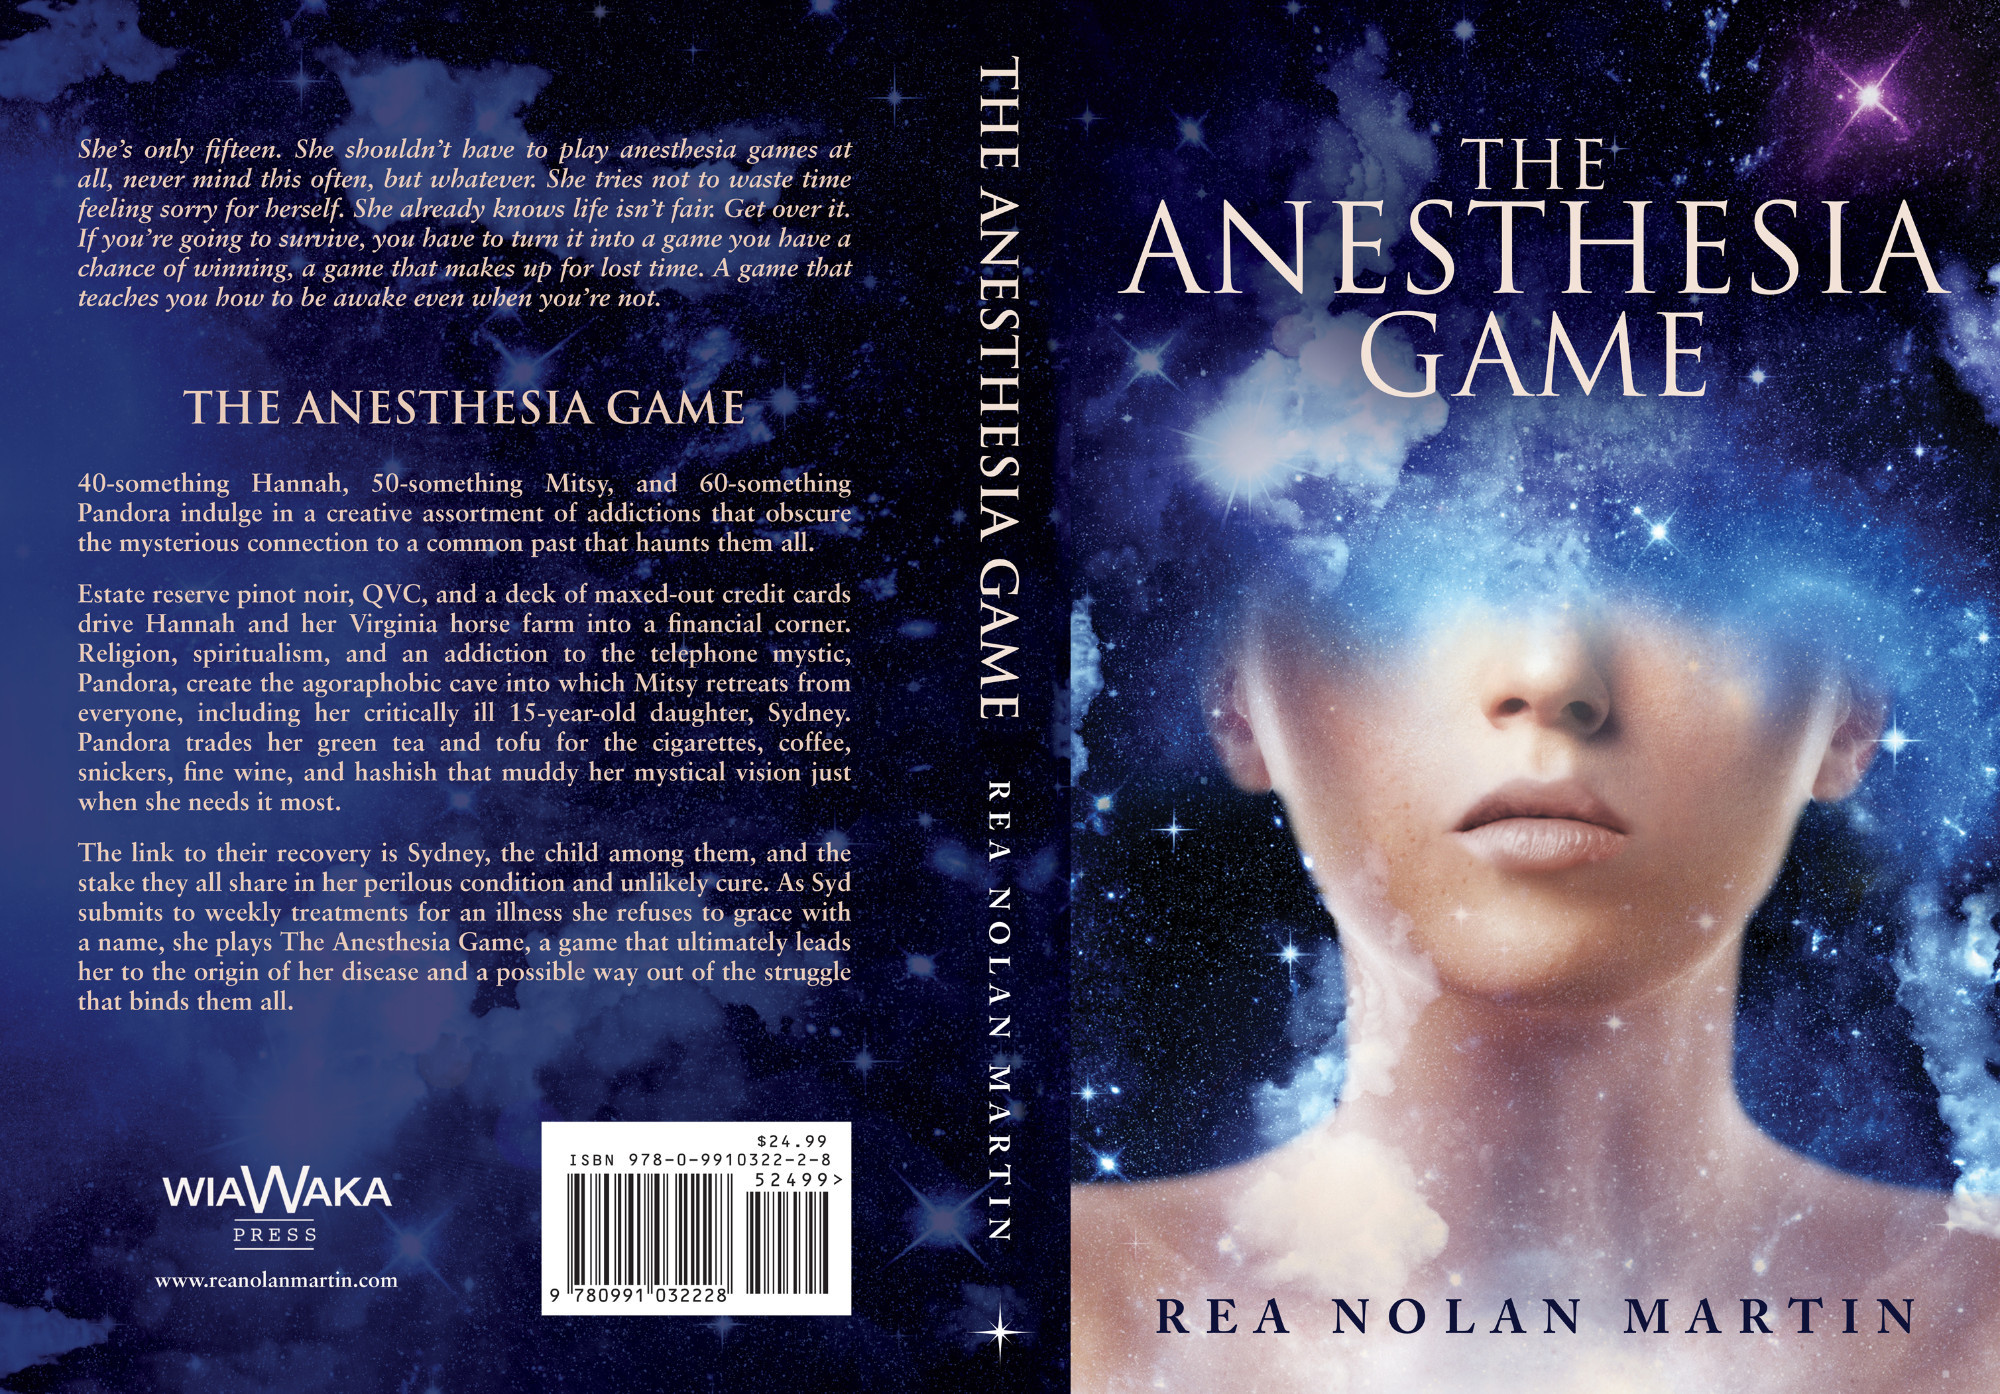 TheAnestisiaGame_CoverSpread_8315_NOBLEED_597-167.jpg